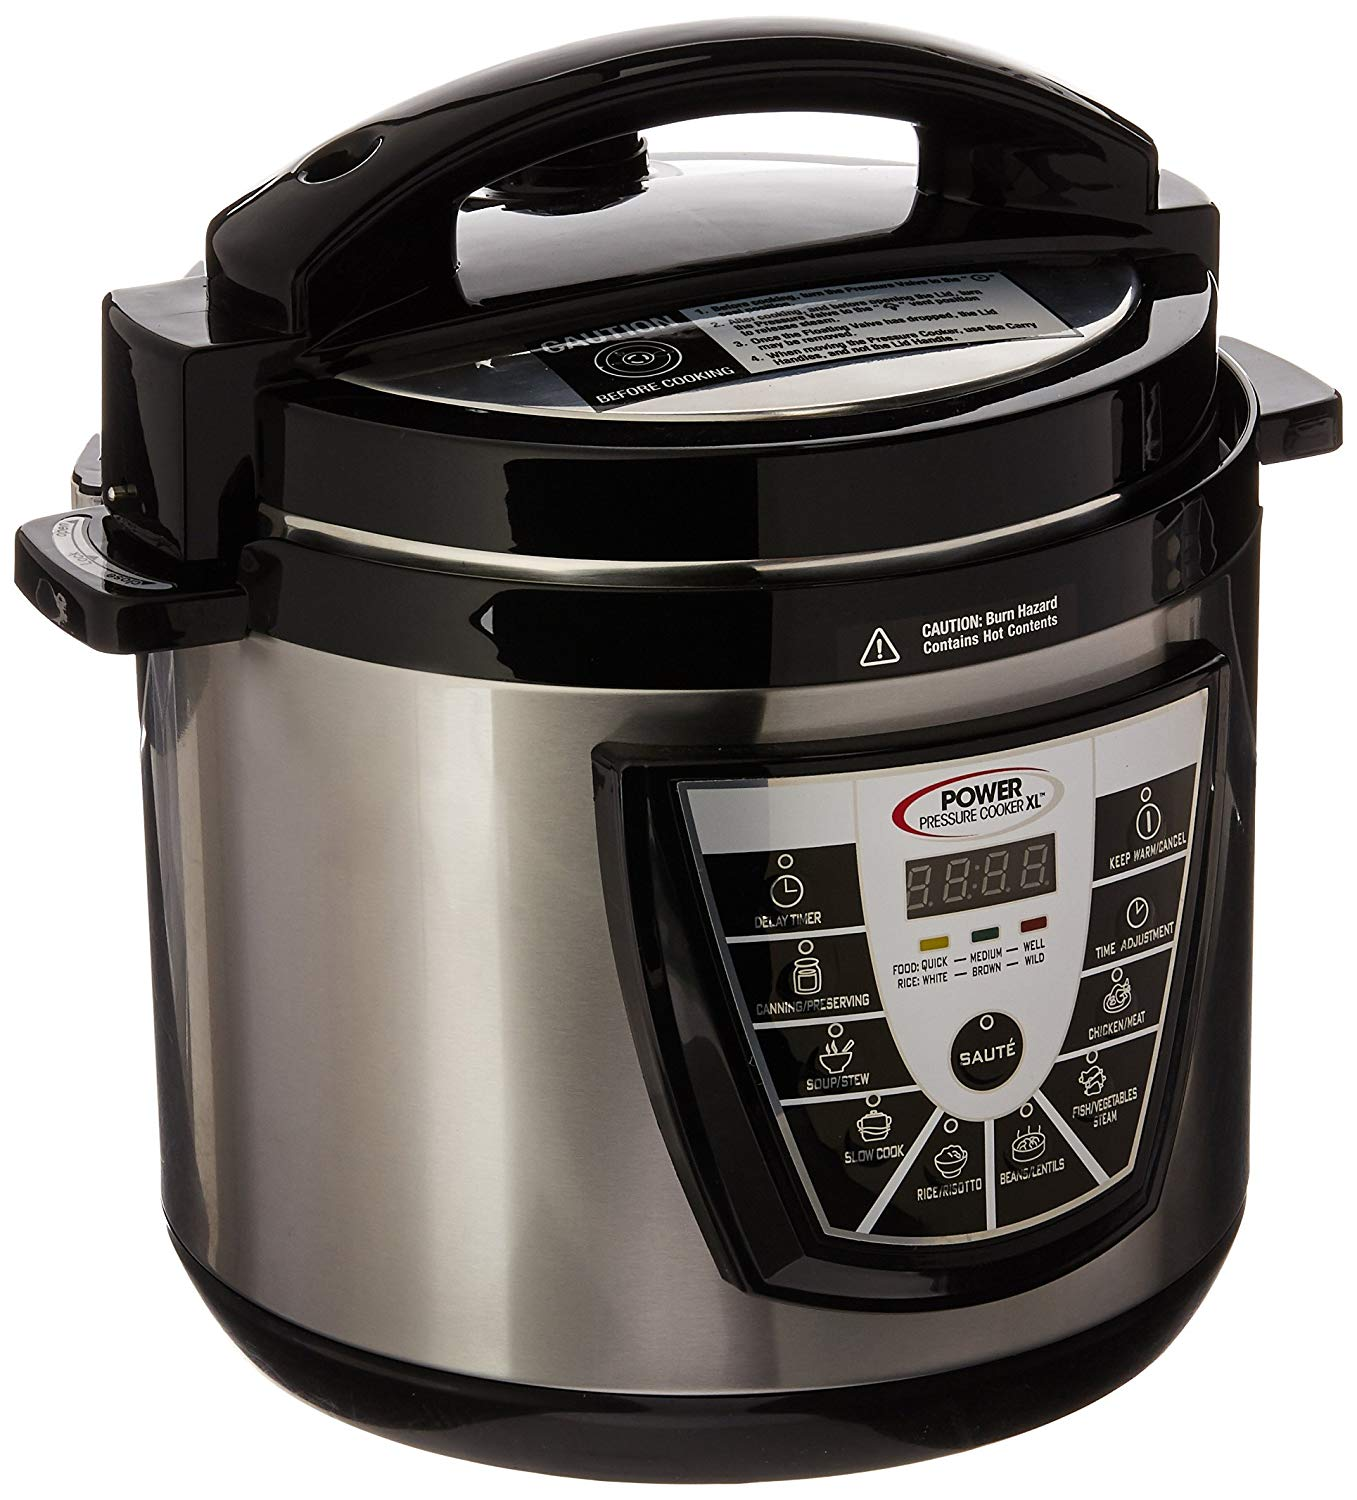 Power Pressure Cooker XL reviews